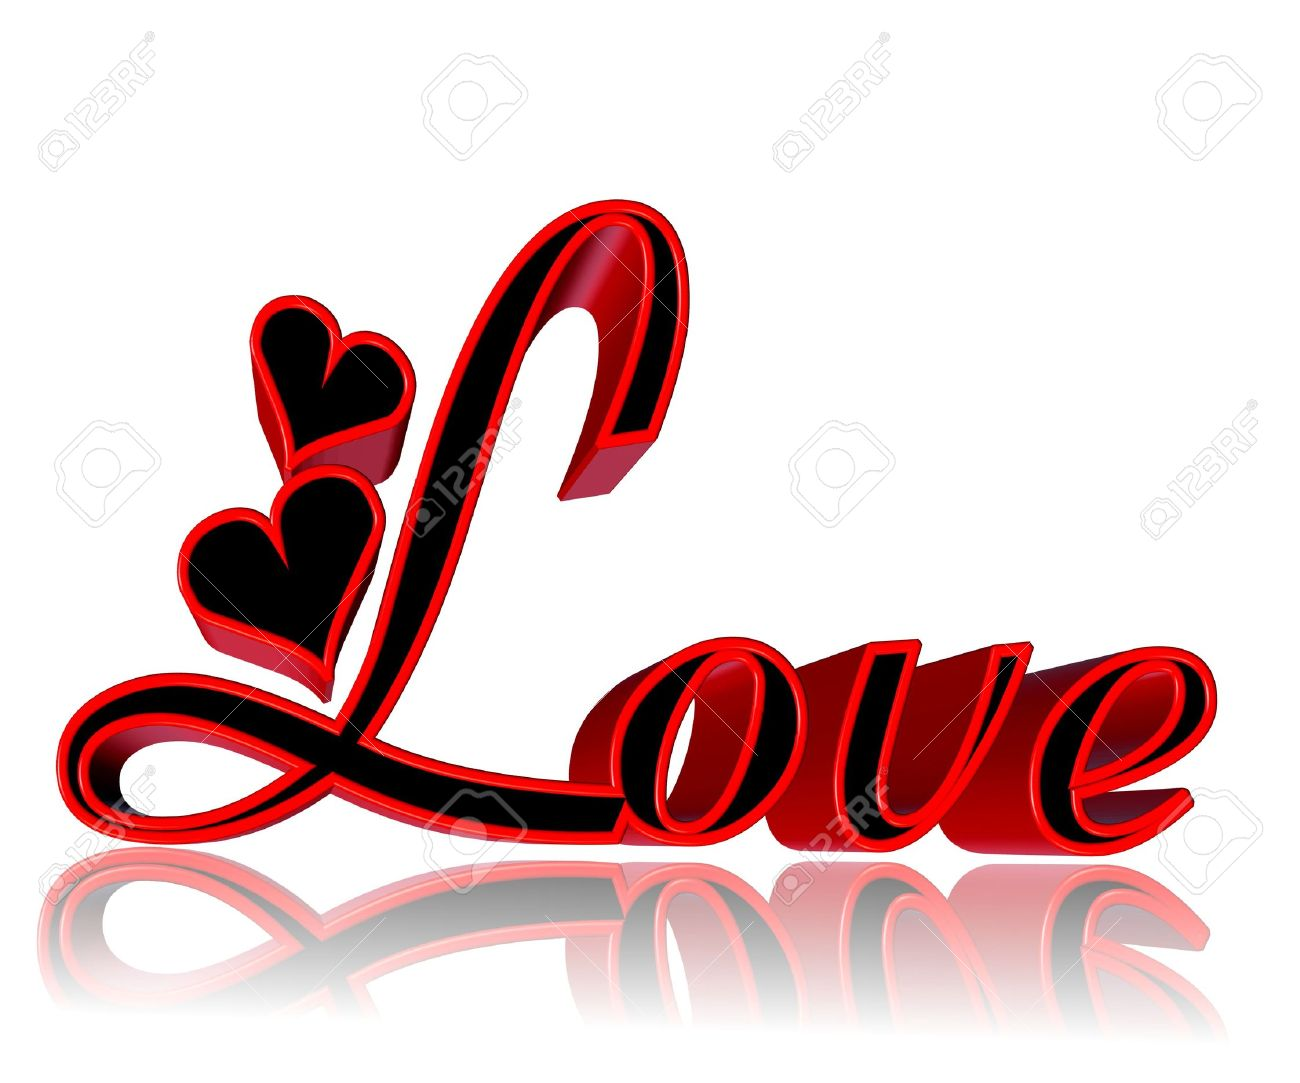 3d Word Love With Hearts In Red And Black On White Background ... royalty free download